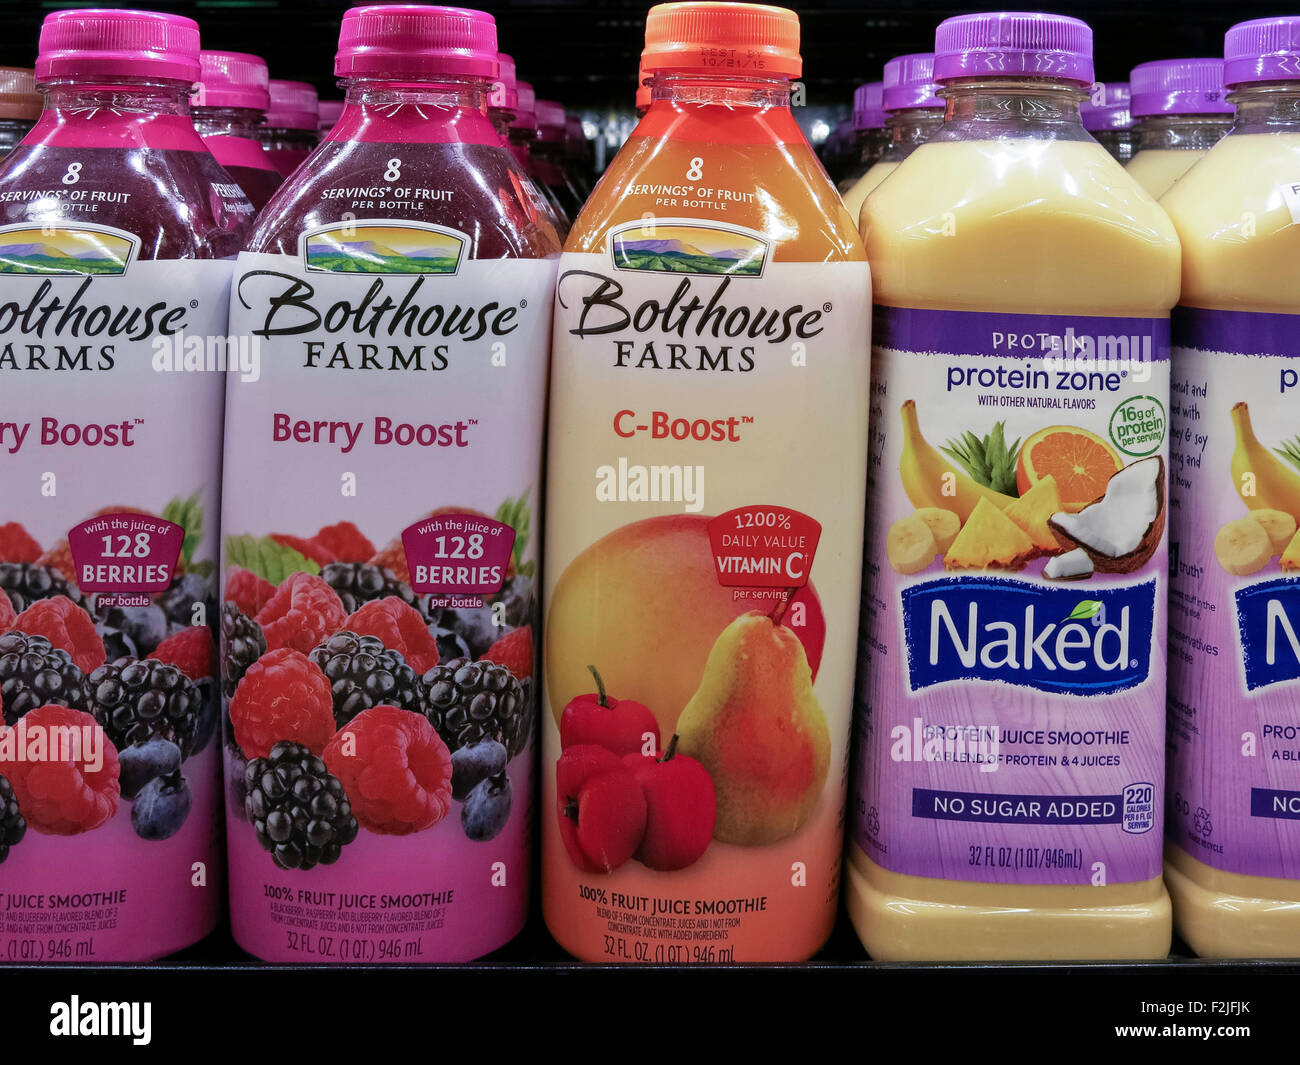 Can discussed buy naked juice drinks thought differently